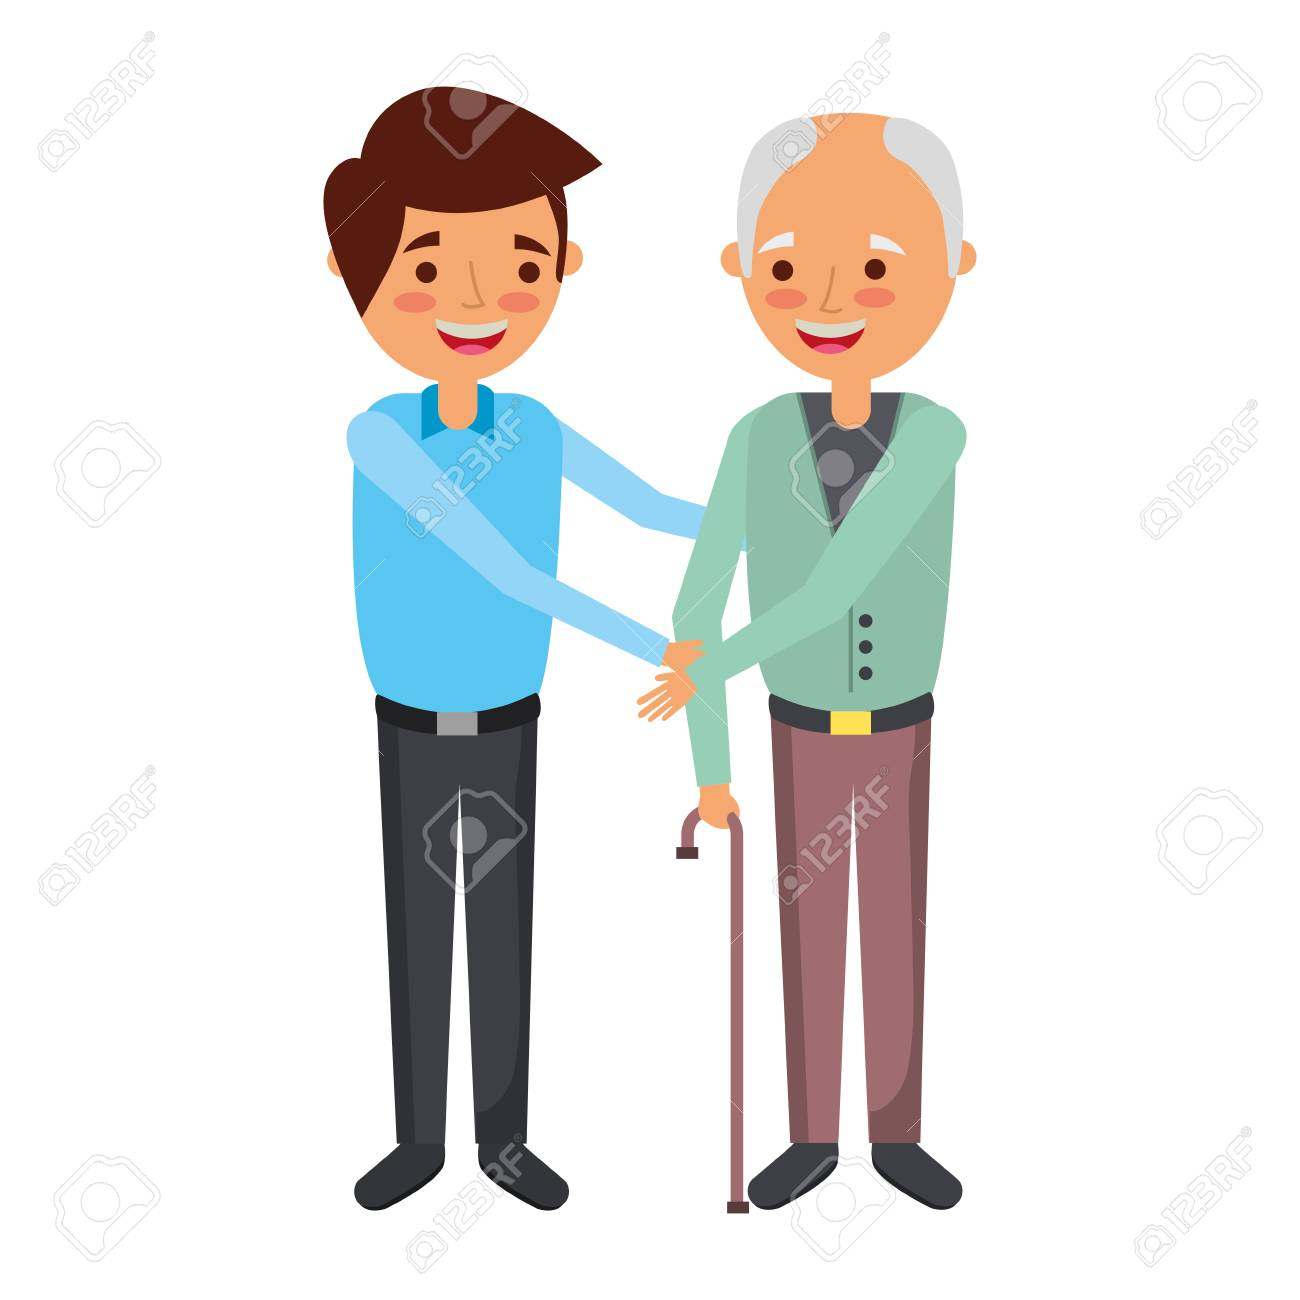 Young man with old man holding hands vector illustration.